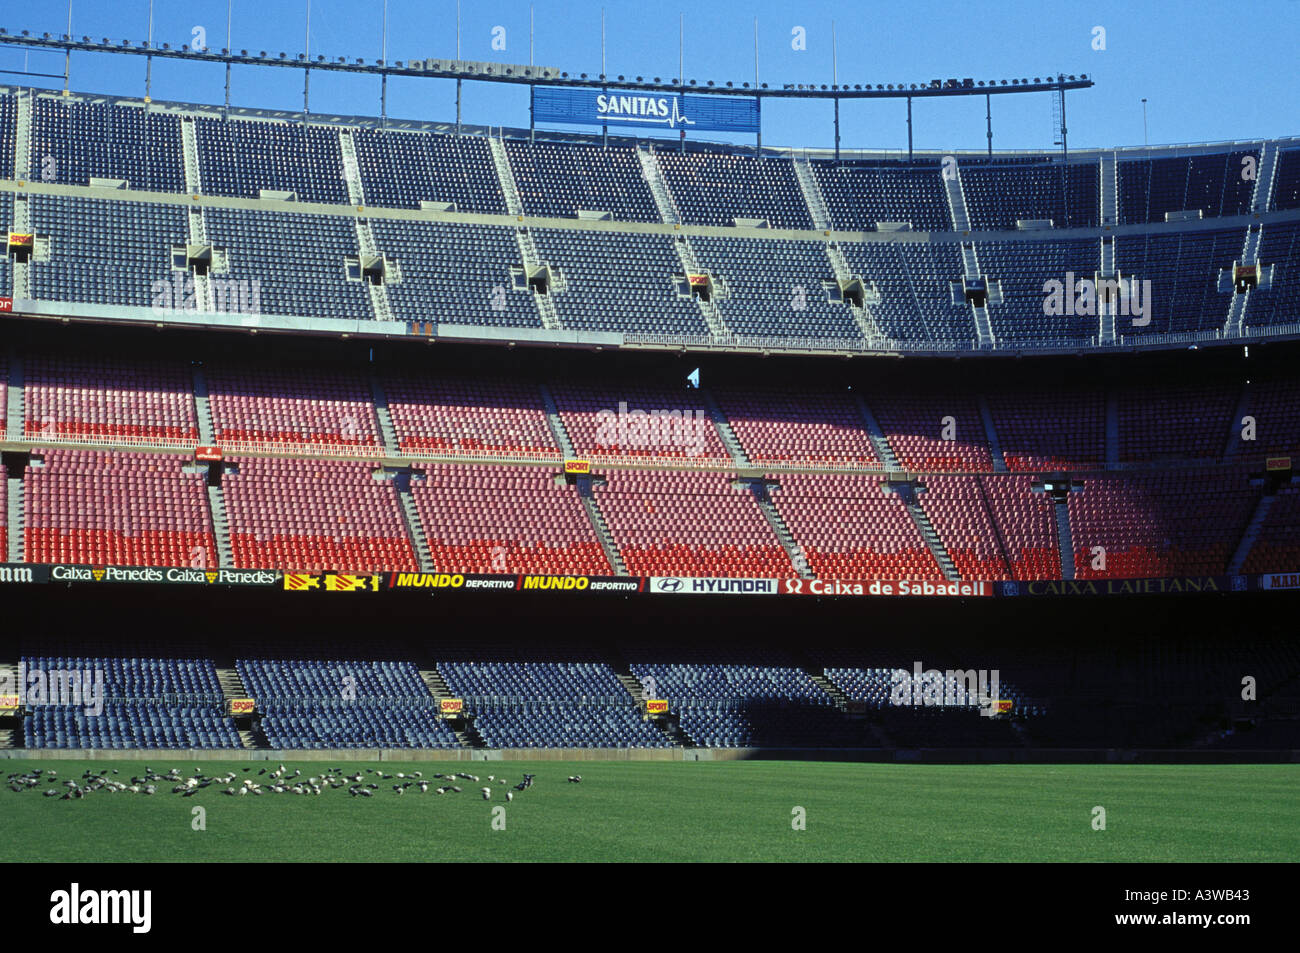 Interior view of the Nou Camp Stadium, home of Barcelona FC. - Stock Image